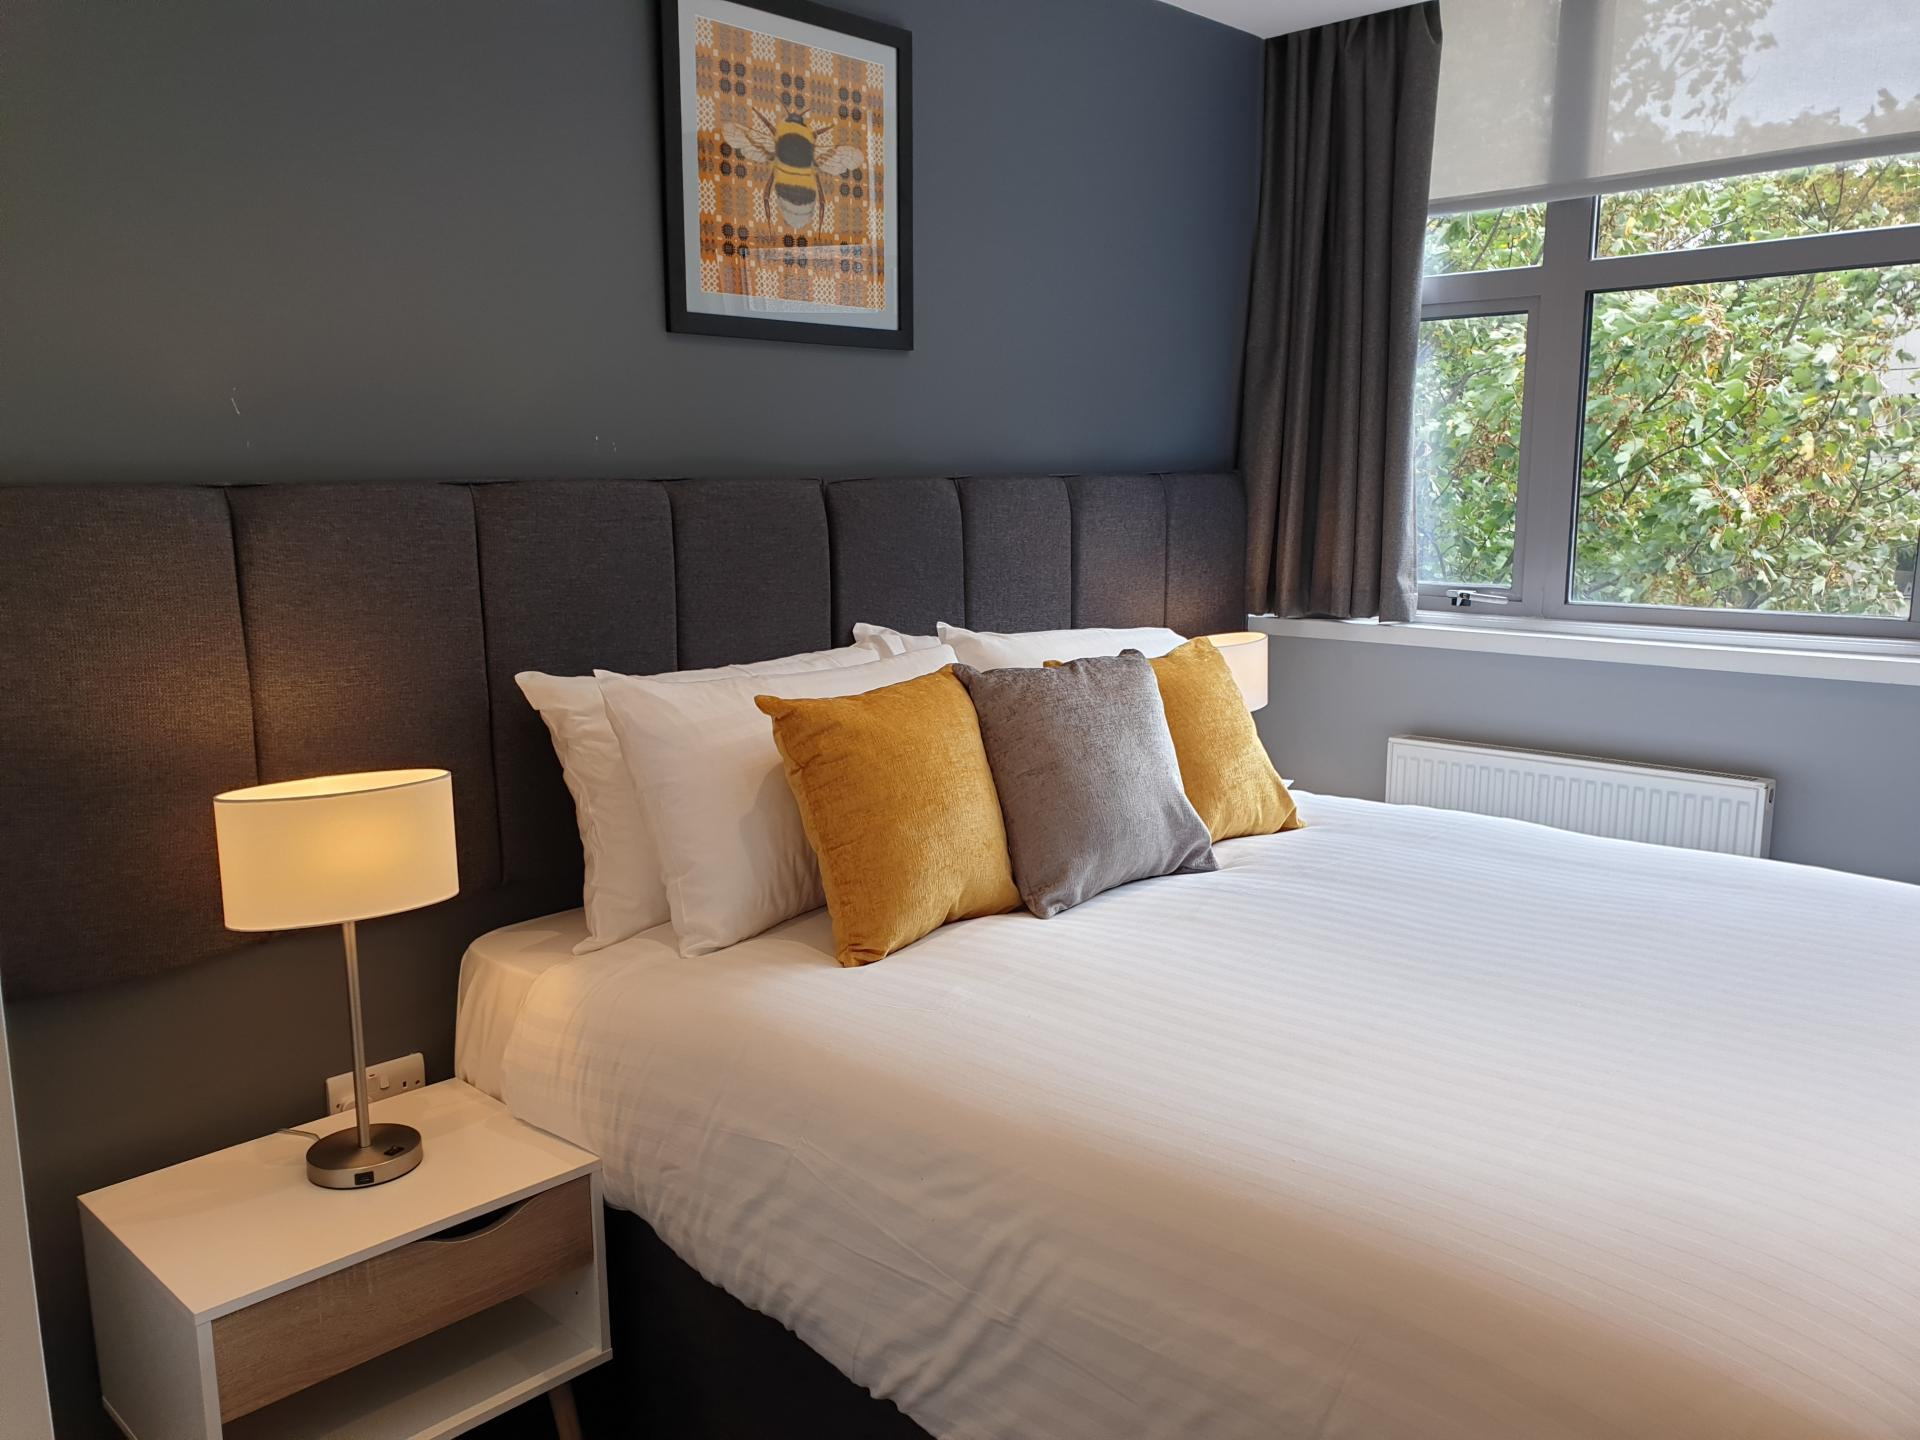 Bedroom at The Spires Cardiff, Centre, Cardiff - Citybase Apartments